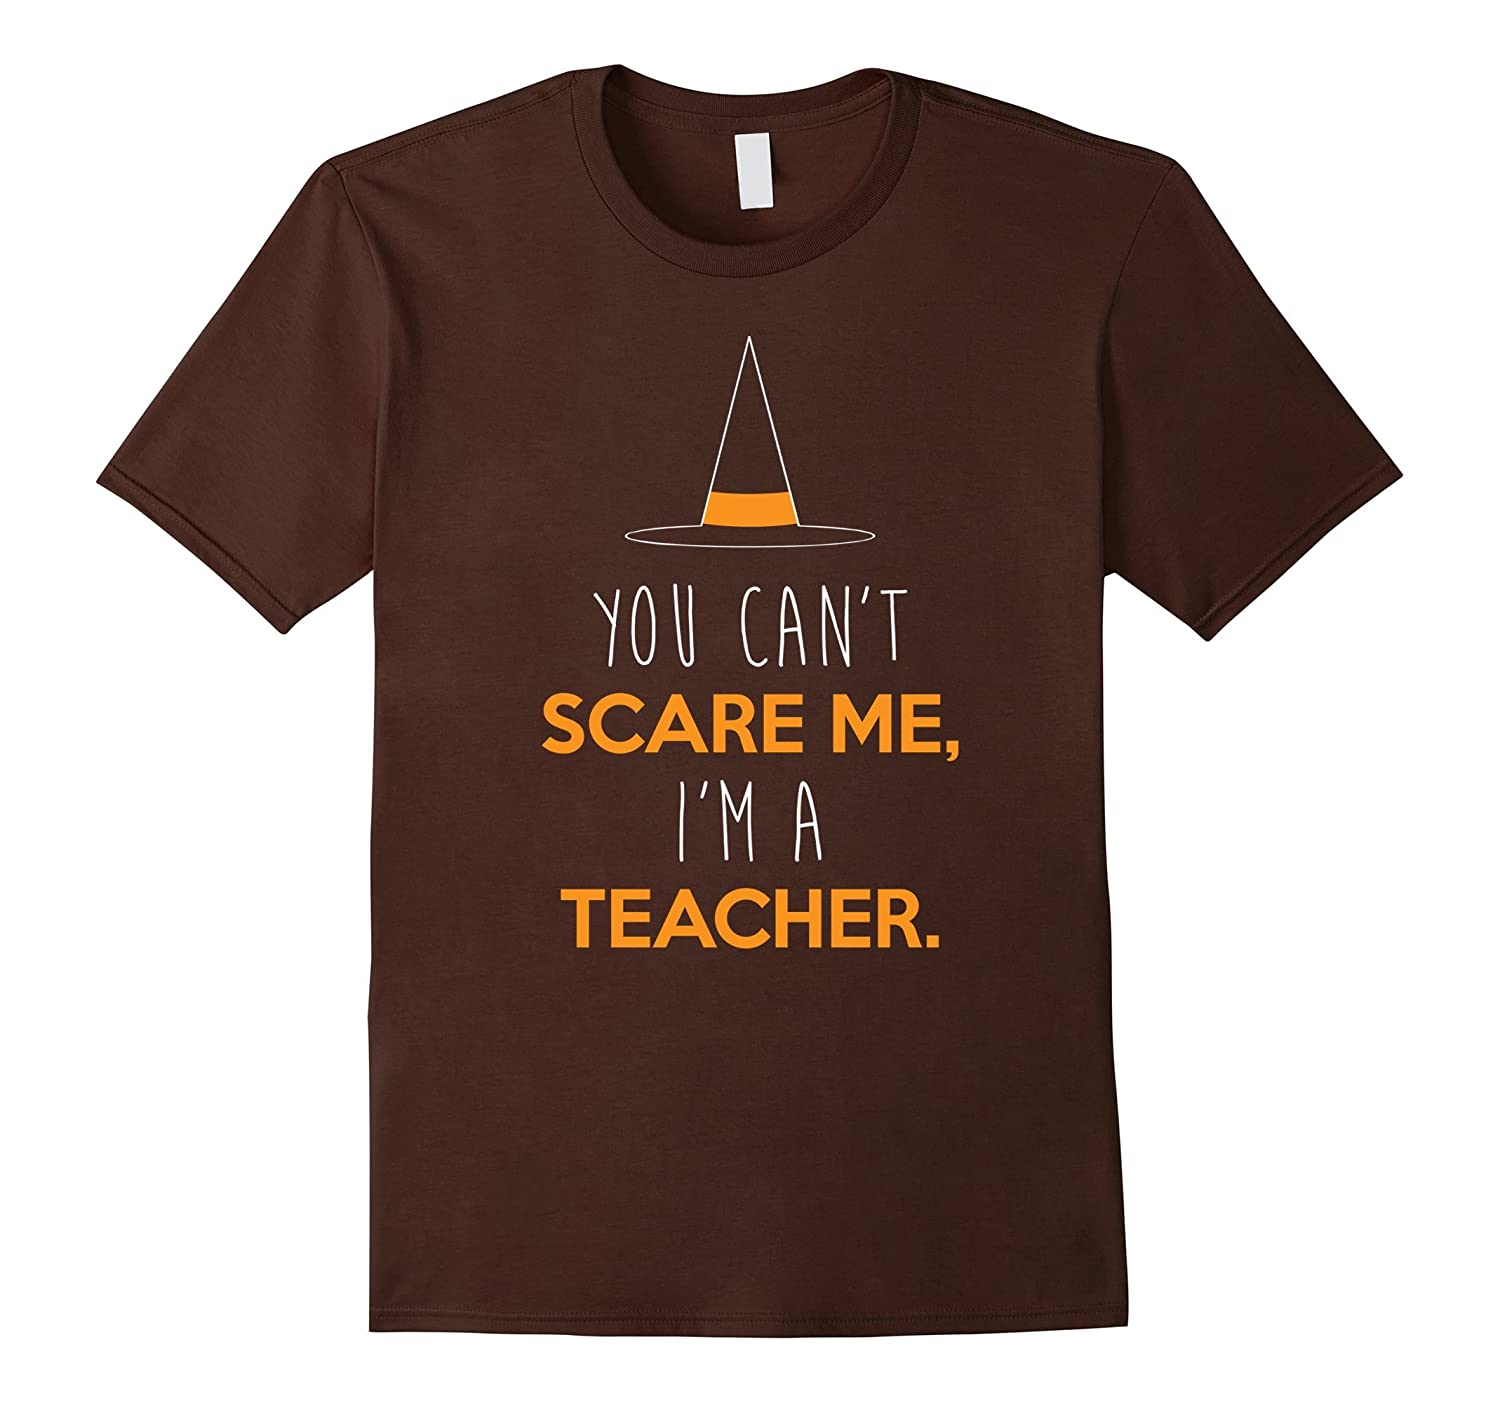 Can't Scare Me, I'm A Teacher Shirt, Funny Halloween Gift-FL